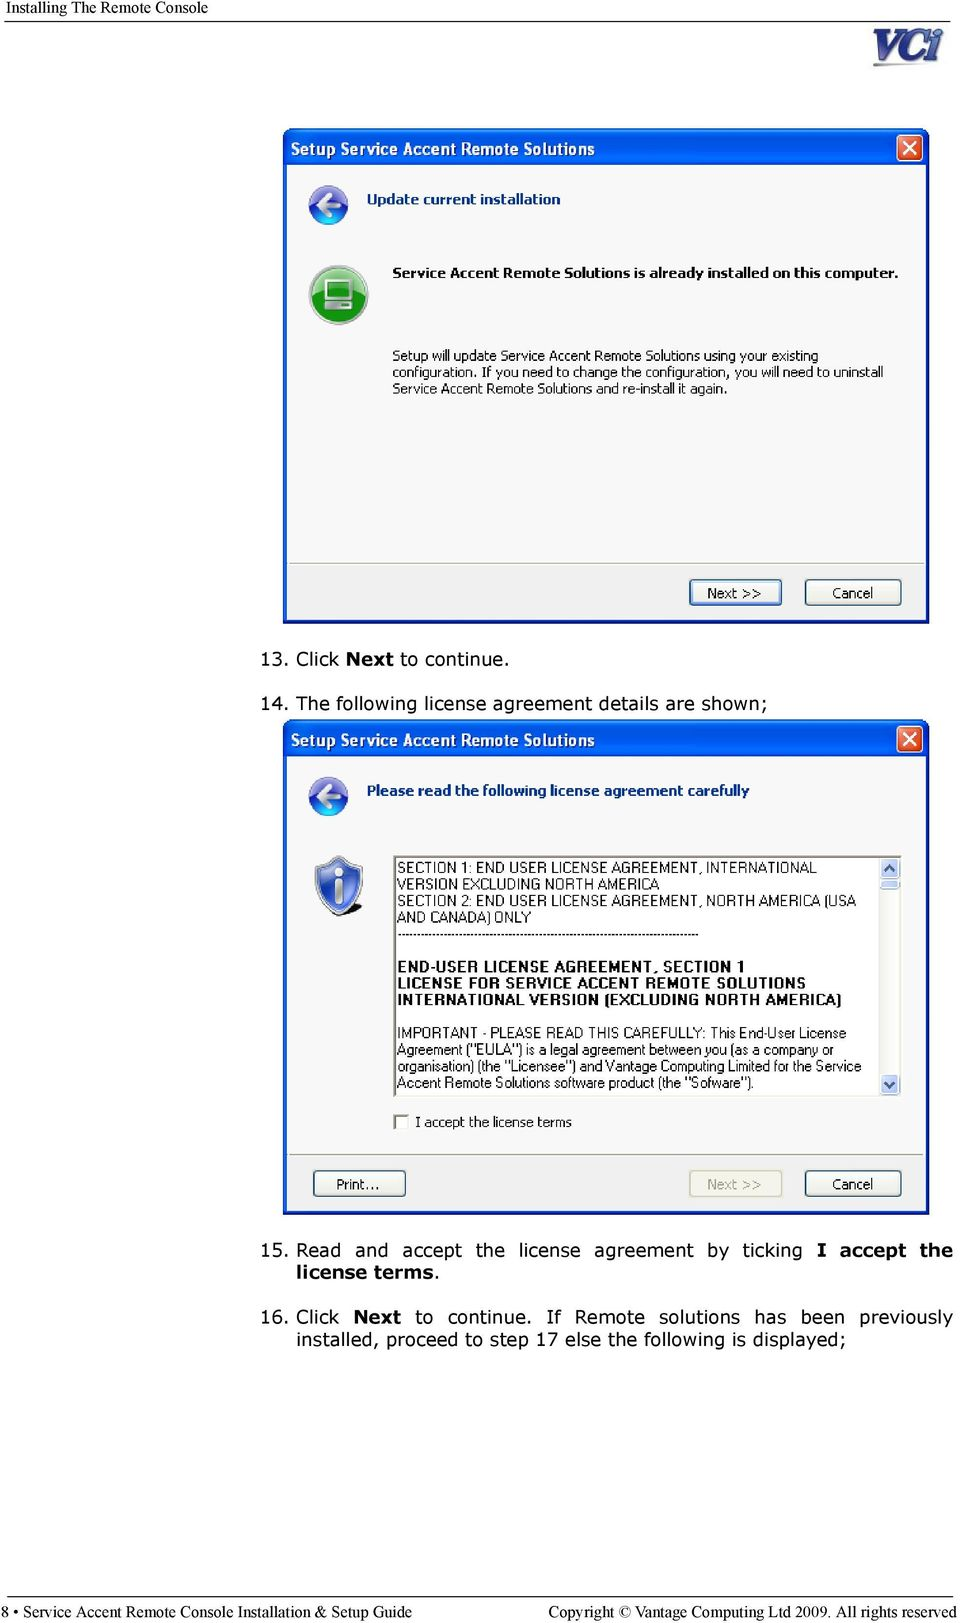 Read and accept the license agreement by ticking I accept the license terms. 16. Click Next to continue.